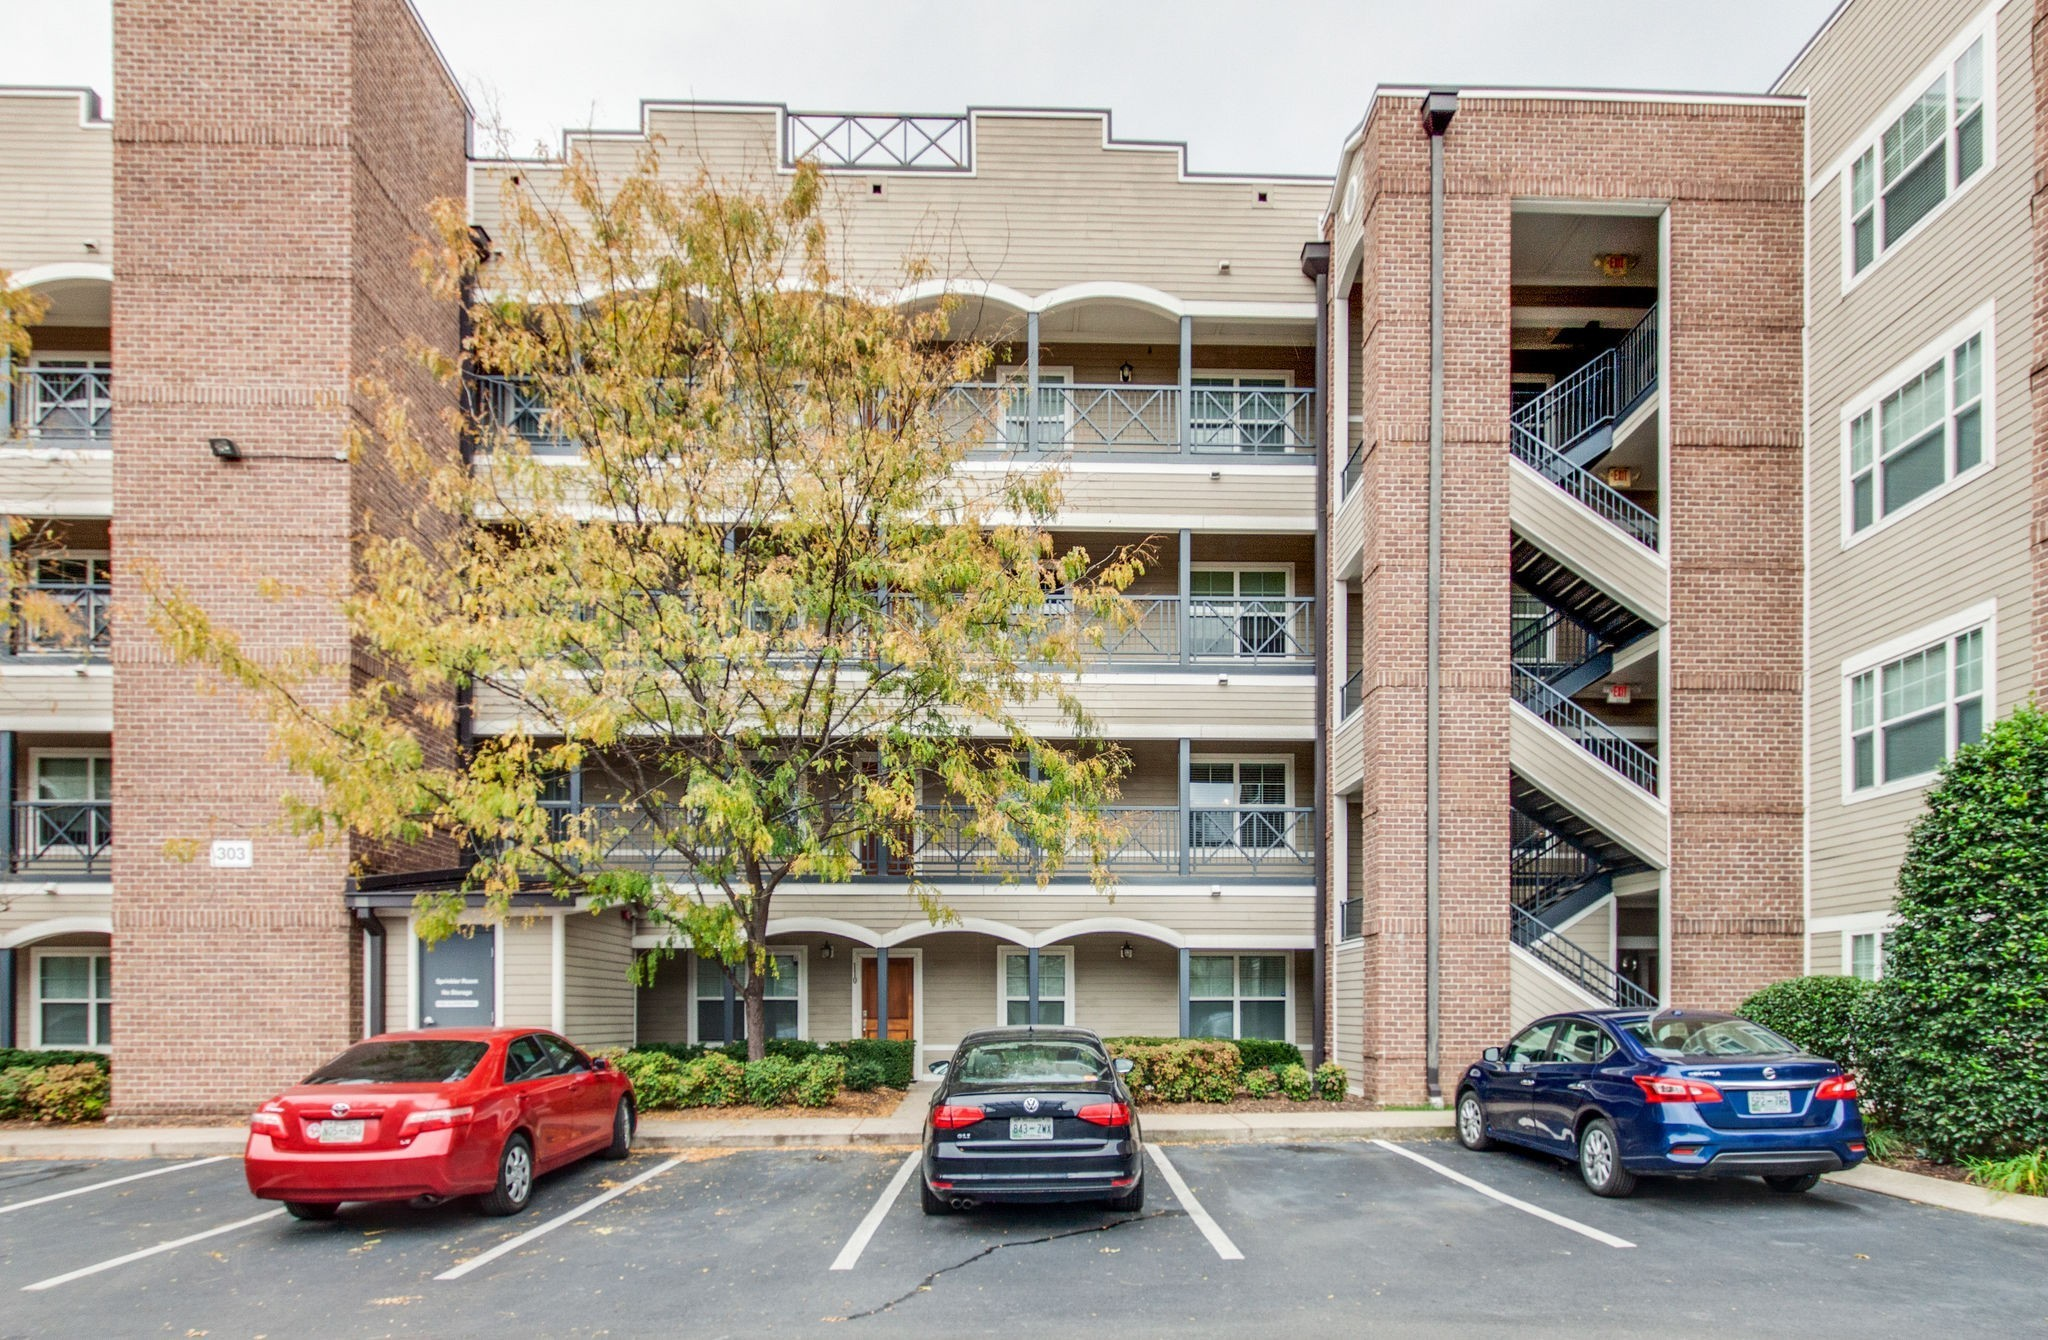 Upscale and the ultimate in Downtown living, Top floor, end unit, Spacious 1 bedroom with city views, Fridge, w/d to remain. Hardwoods, Granite, 9' ceilings, NEW HVAC system (May 20) Short Walk to Nash Sounds Stadium, Farmers Market, Bi-Centennial Mall, Nissan Stadium, Watch the 4th of July fireworks on the rooftop. Move-in Ready! Don't let this one get away!